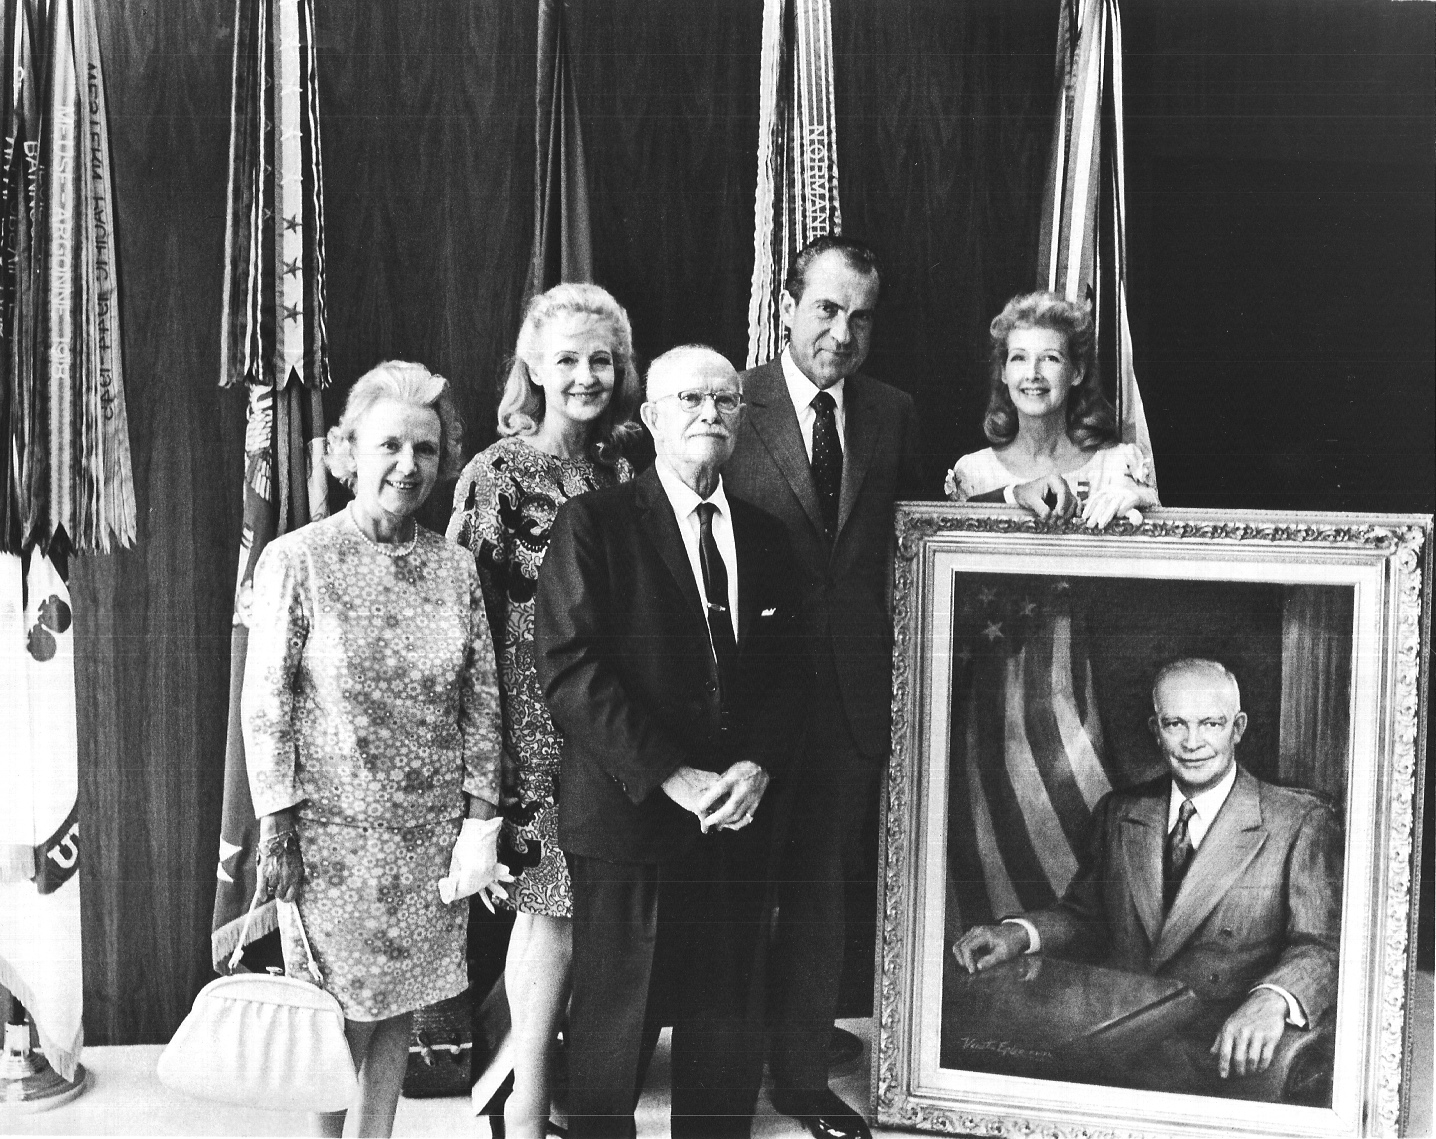 (L-R): Mrs. Wells (AIFA), Daphne Huntington, Colonel Wells (AIFA), President Richard Nixon, Venetia Epler with her portrait of President Eisenhower. Courtesy Christopher Kennedy.